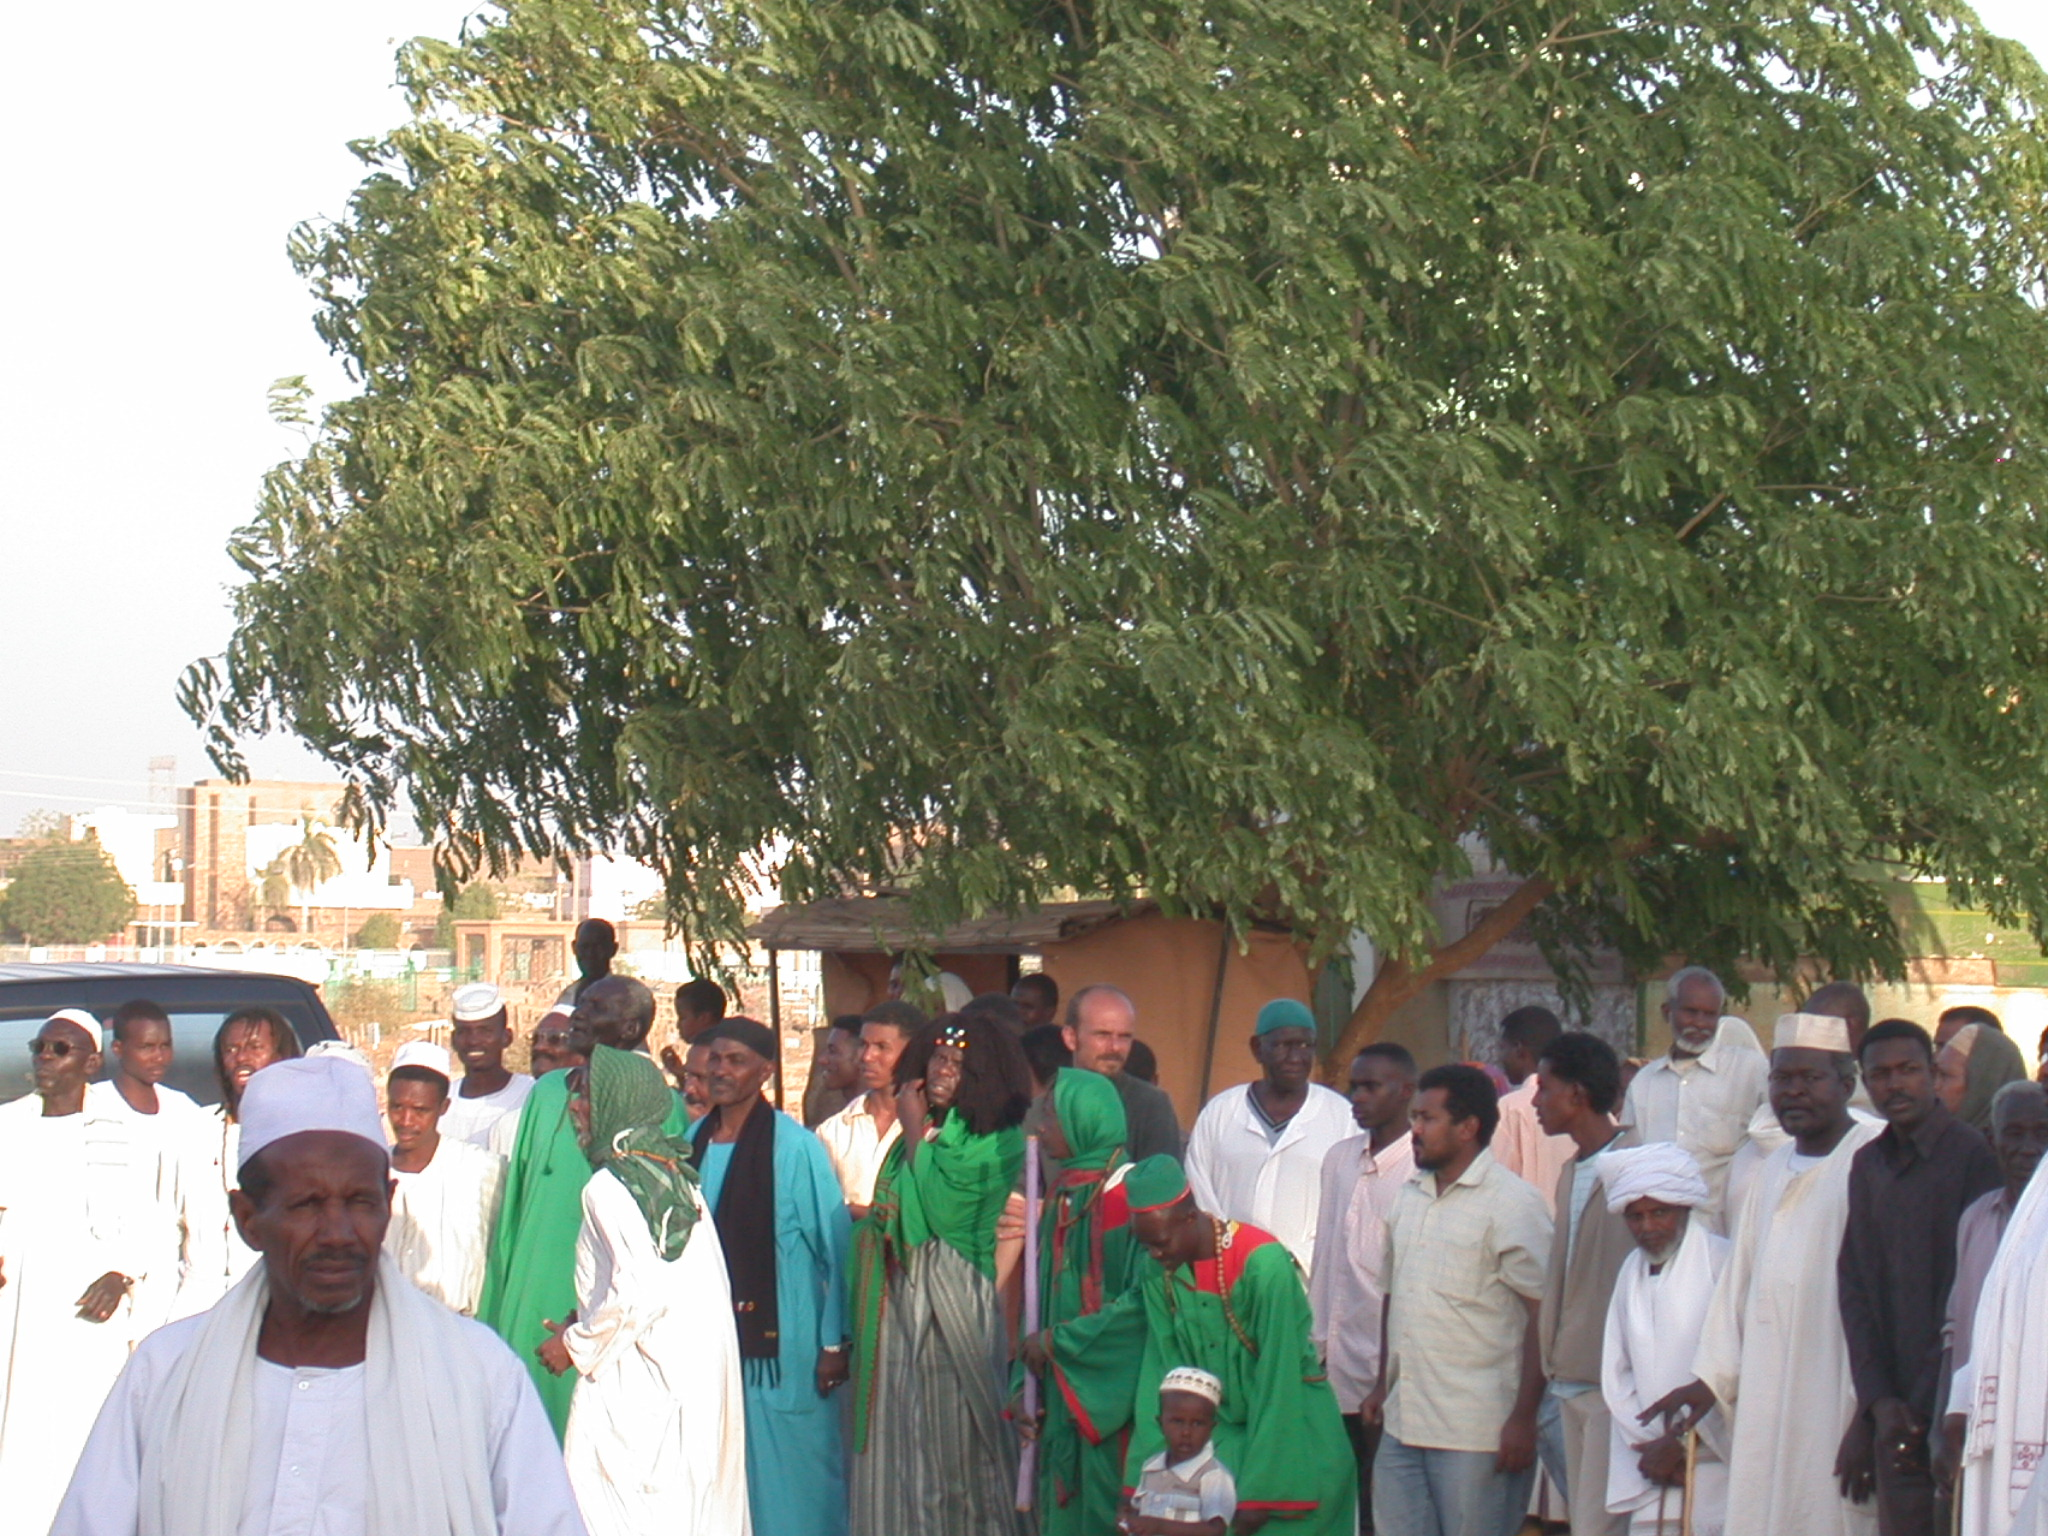 Participants in Sufi Dancing, Omdurman, Sudan